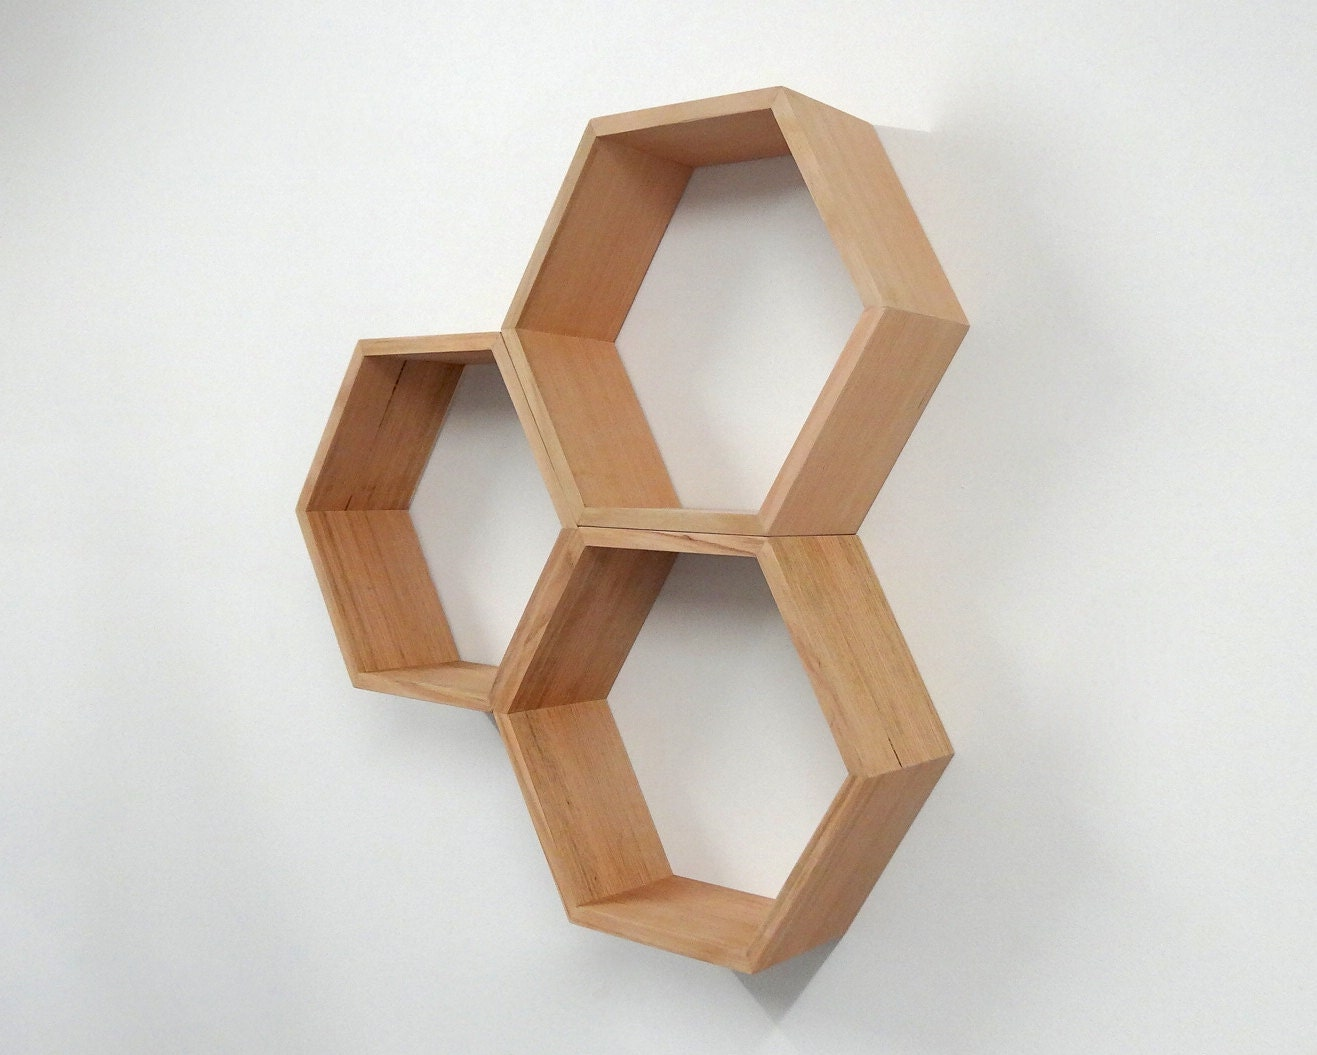 hexagon wooden shelf shadow box tasmanian oak. Black Bedroom Furniture Sets. Home Design Ideas